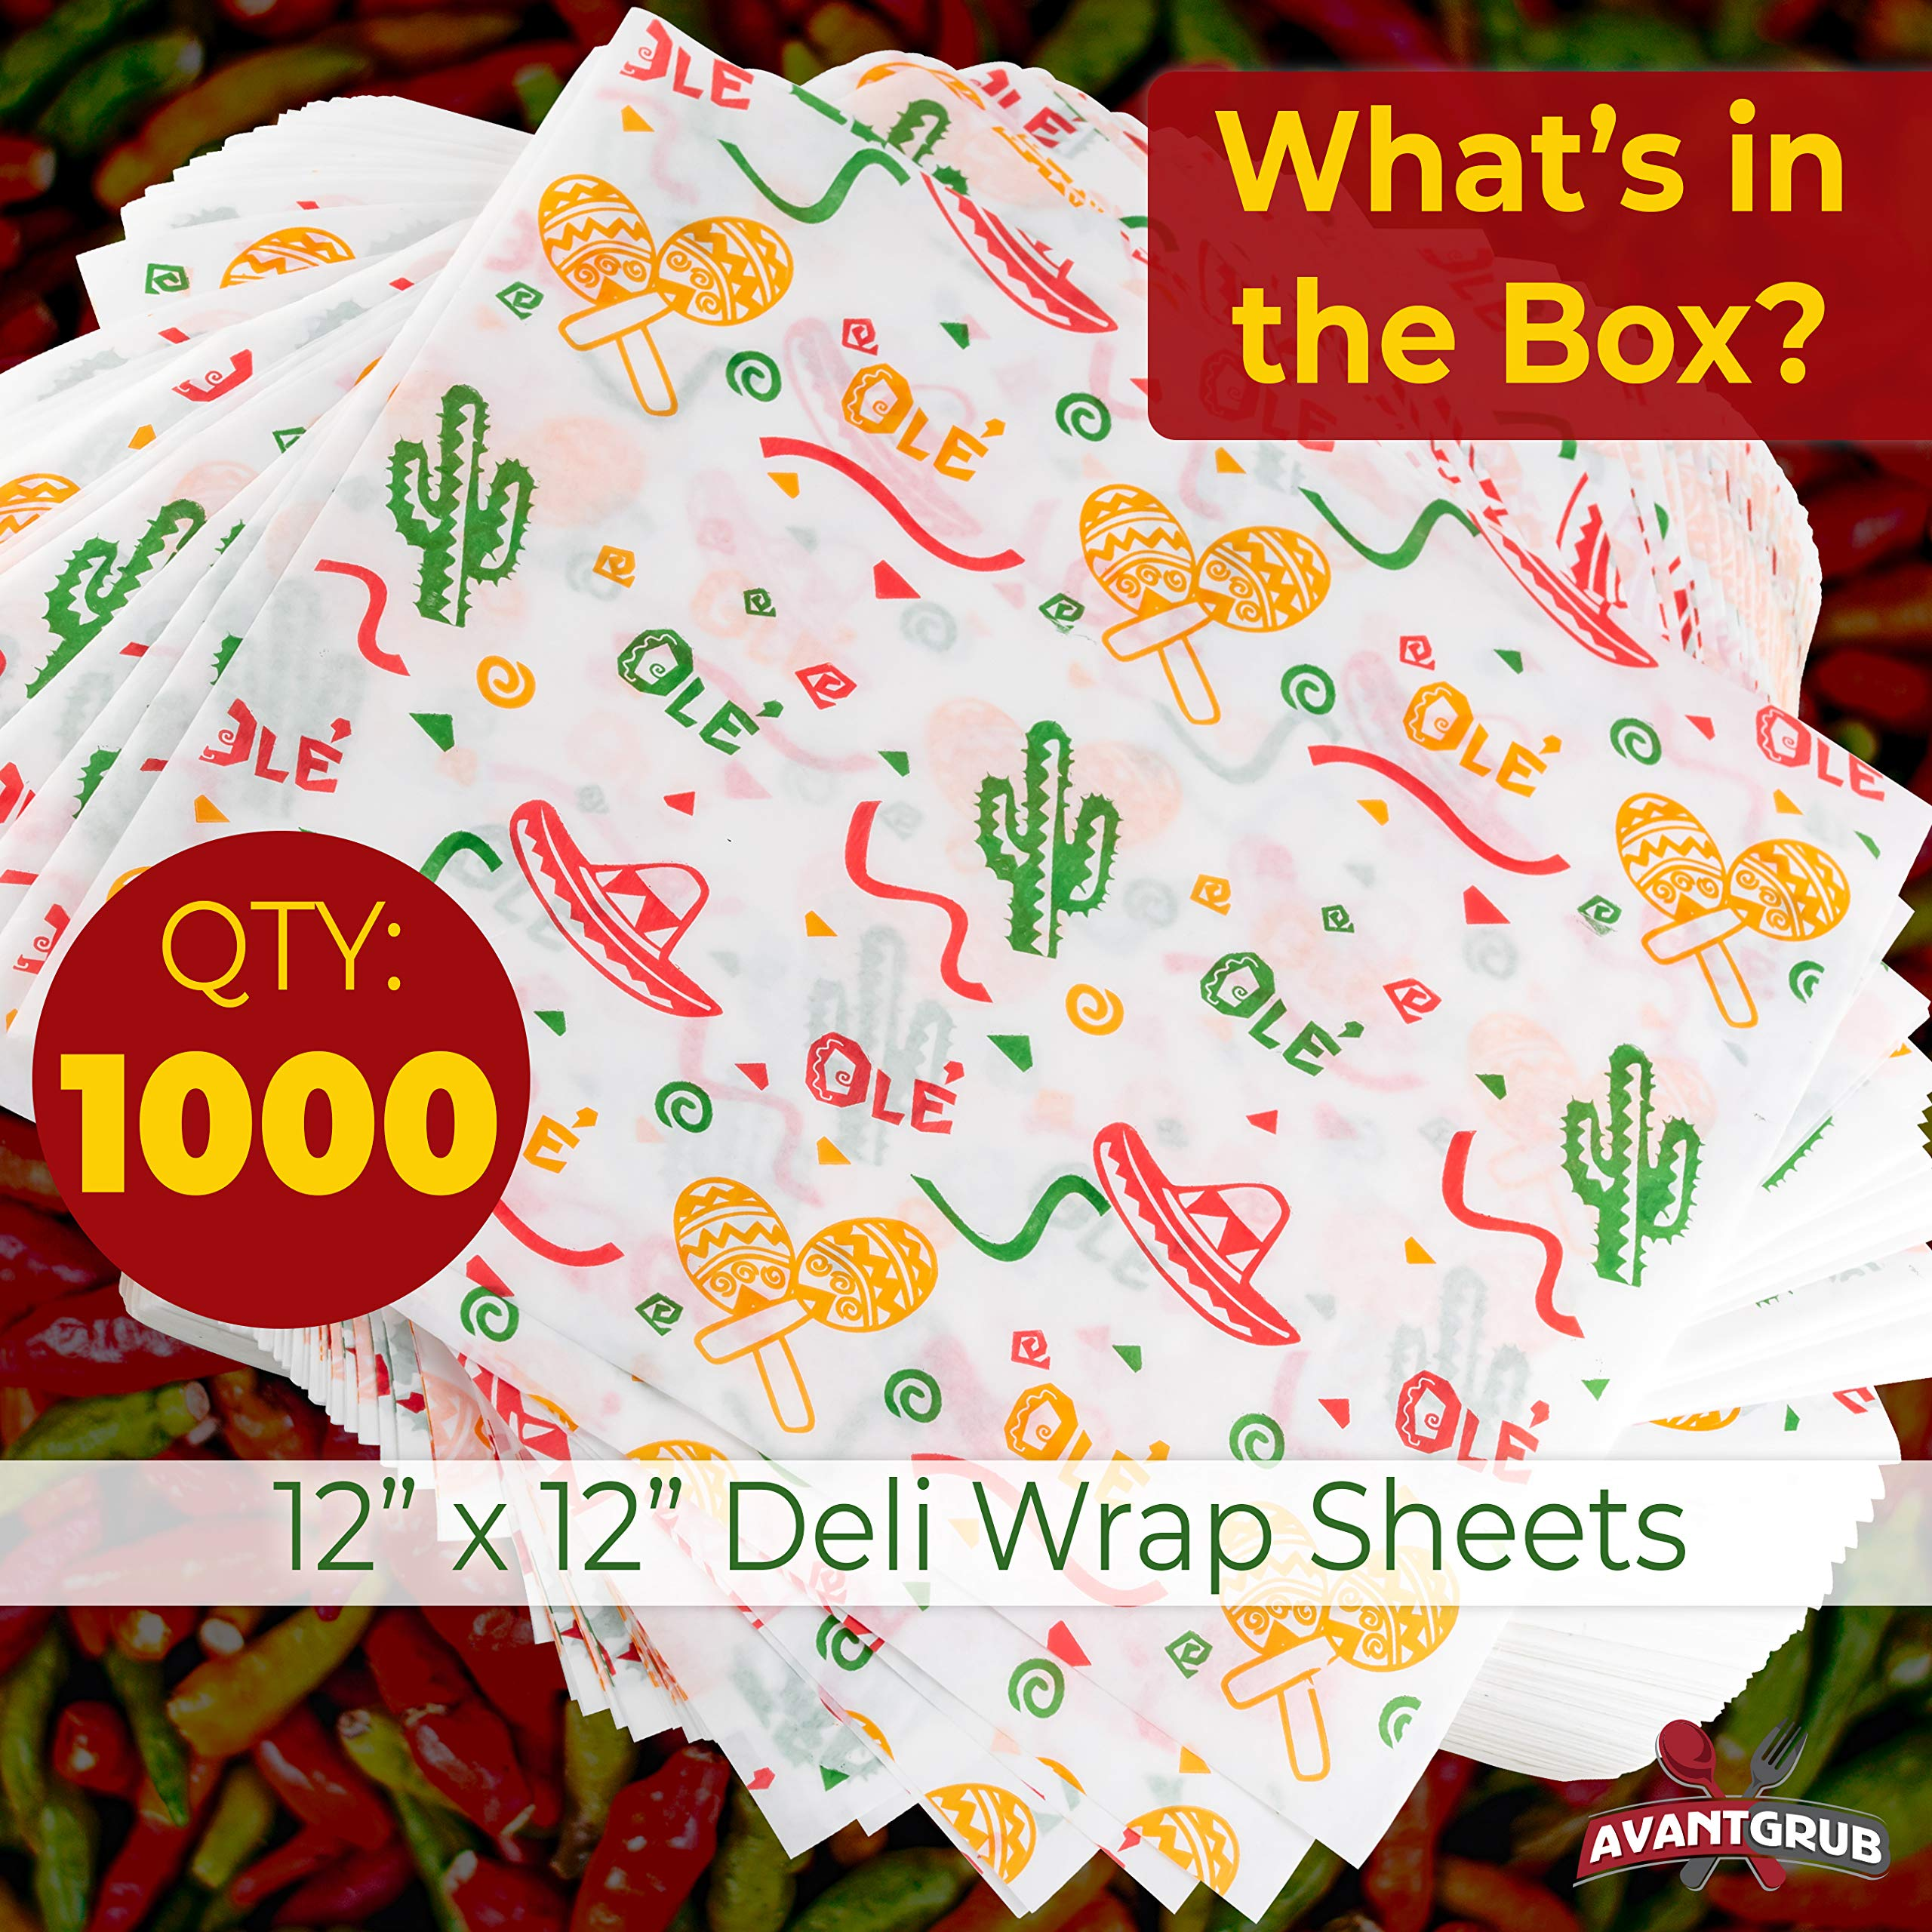 Fun, Fiesta Style 12in Deli Paper 1000 Ct. Greaseproof, Microwave-Safe Mexican Themed Tissue Great for Burrito Wrappers or Nacho Basket Liners. Southwest Party Supplies for Cinco de Mayo Celebration by Avant Grub (Image #2)